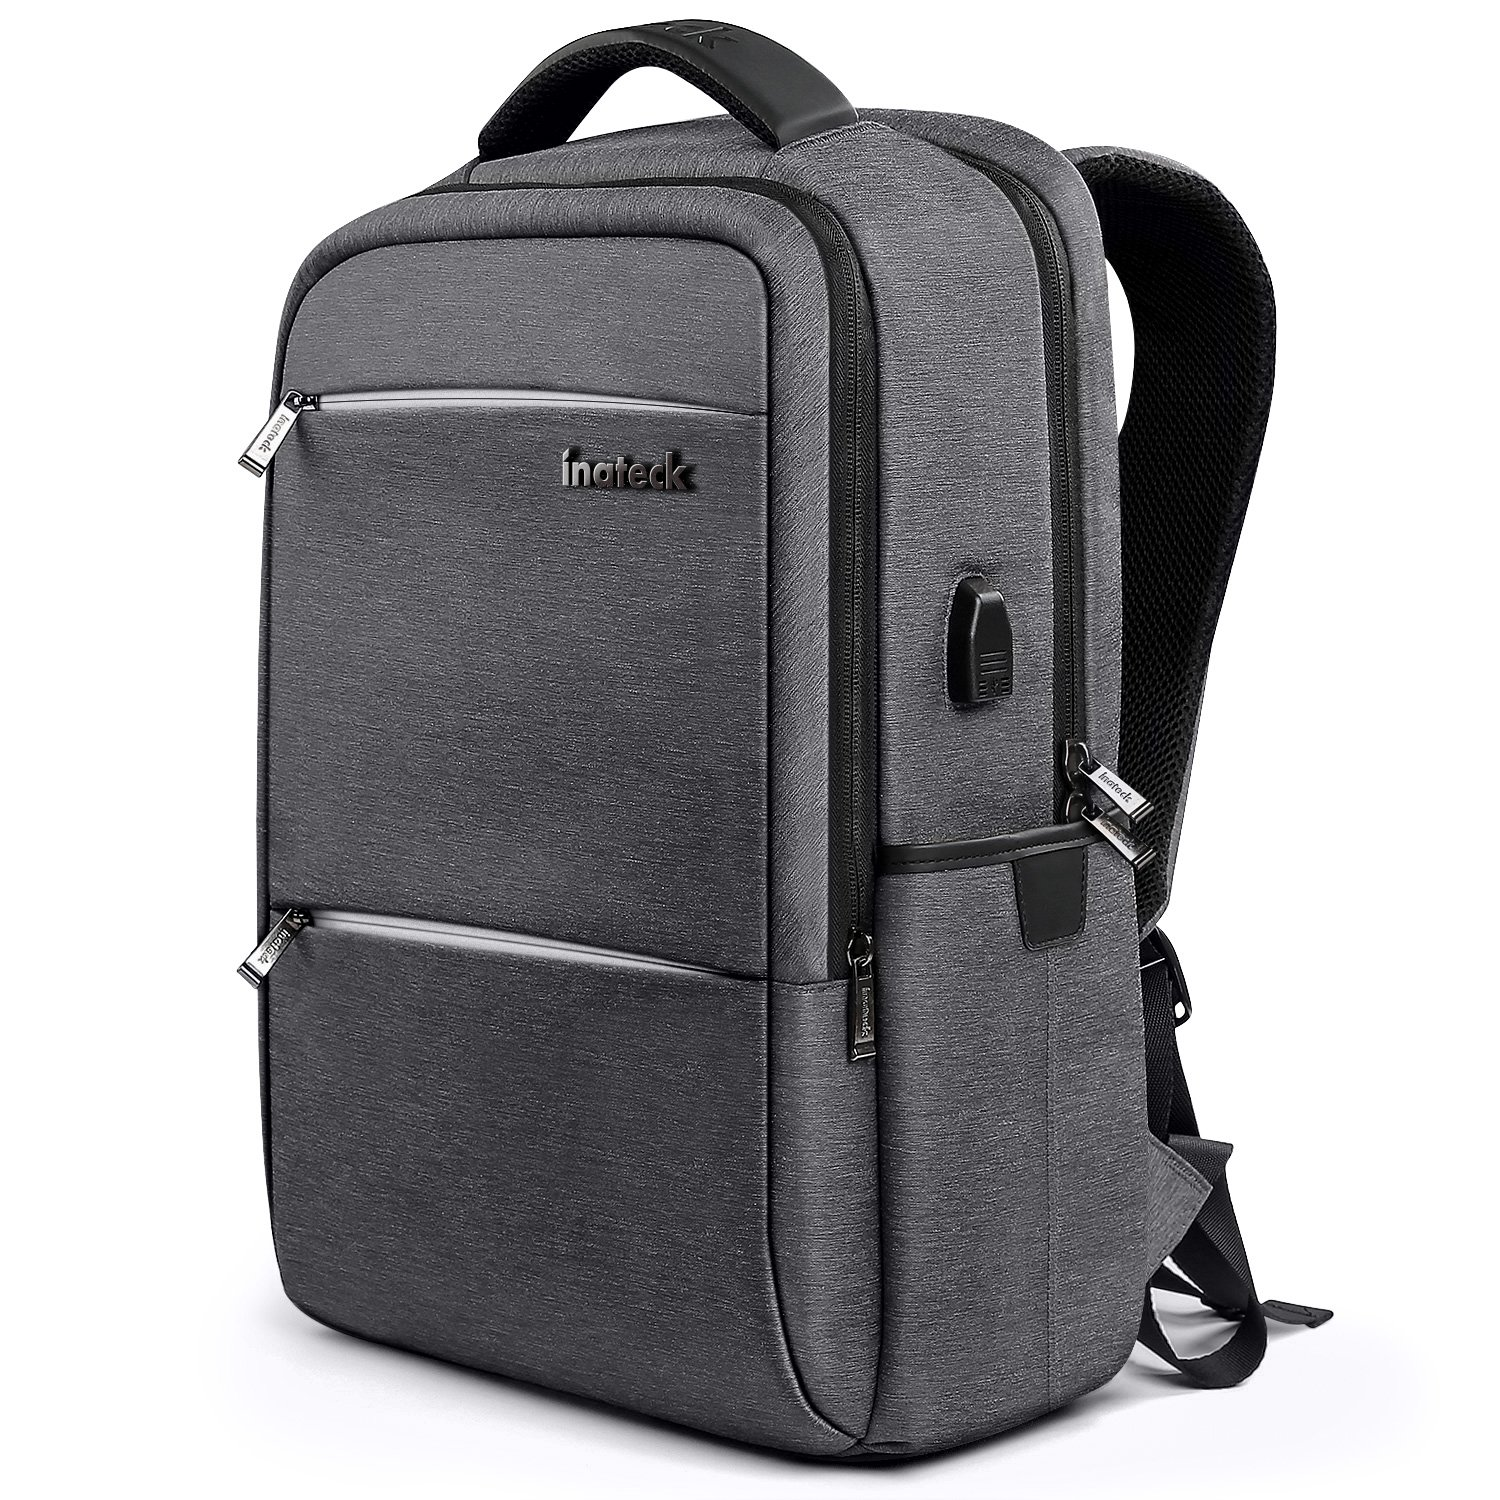 [High-Grade Materials] Inateck 15.6 Inch Anti-Theft School Business Travel Laptop Backpack Rucksack with USB Charging Port/Rain Cover/Luggage Belt, Dark Gray